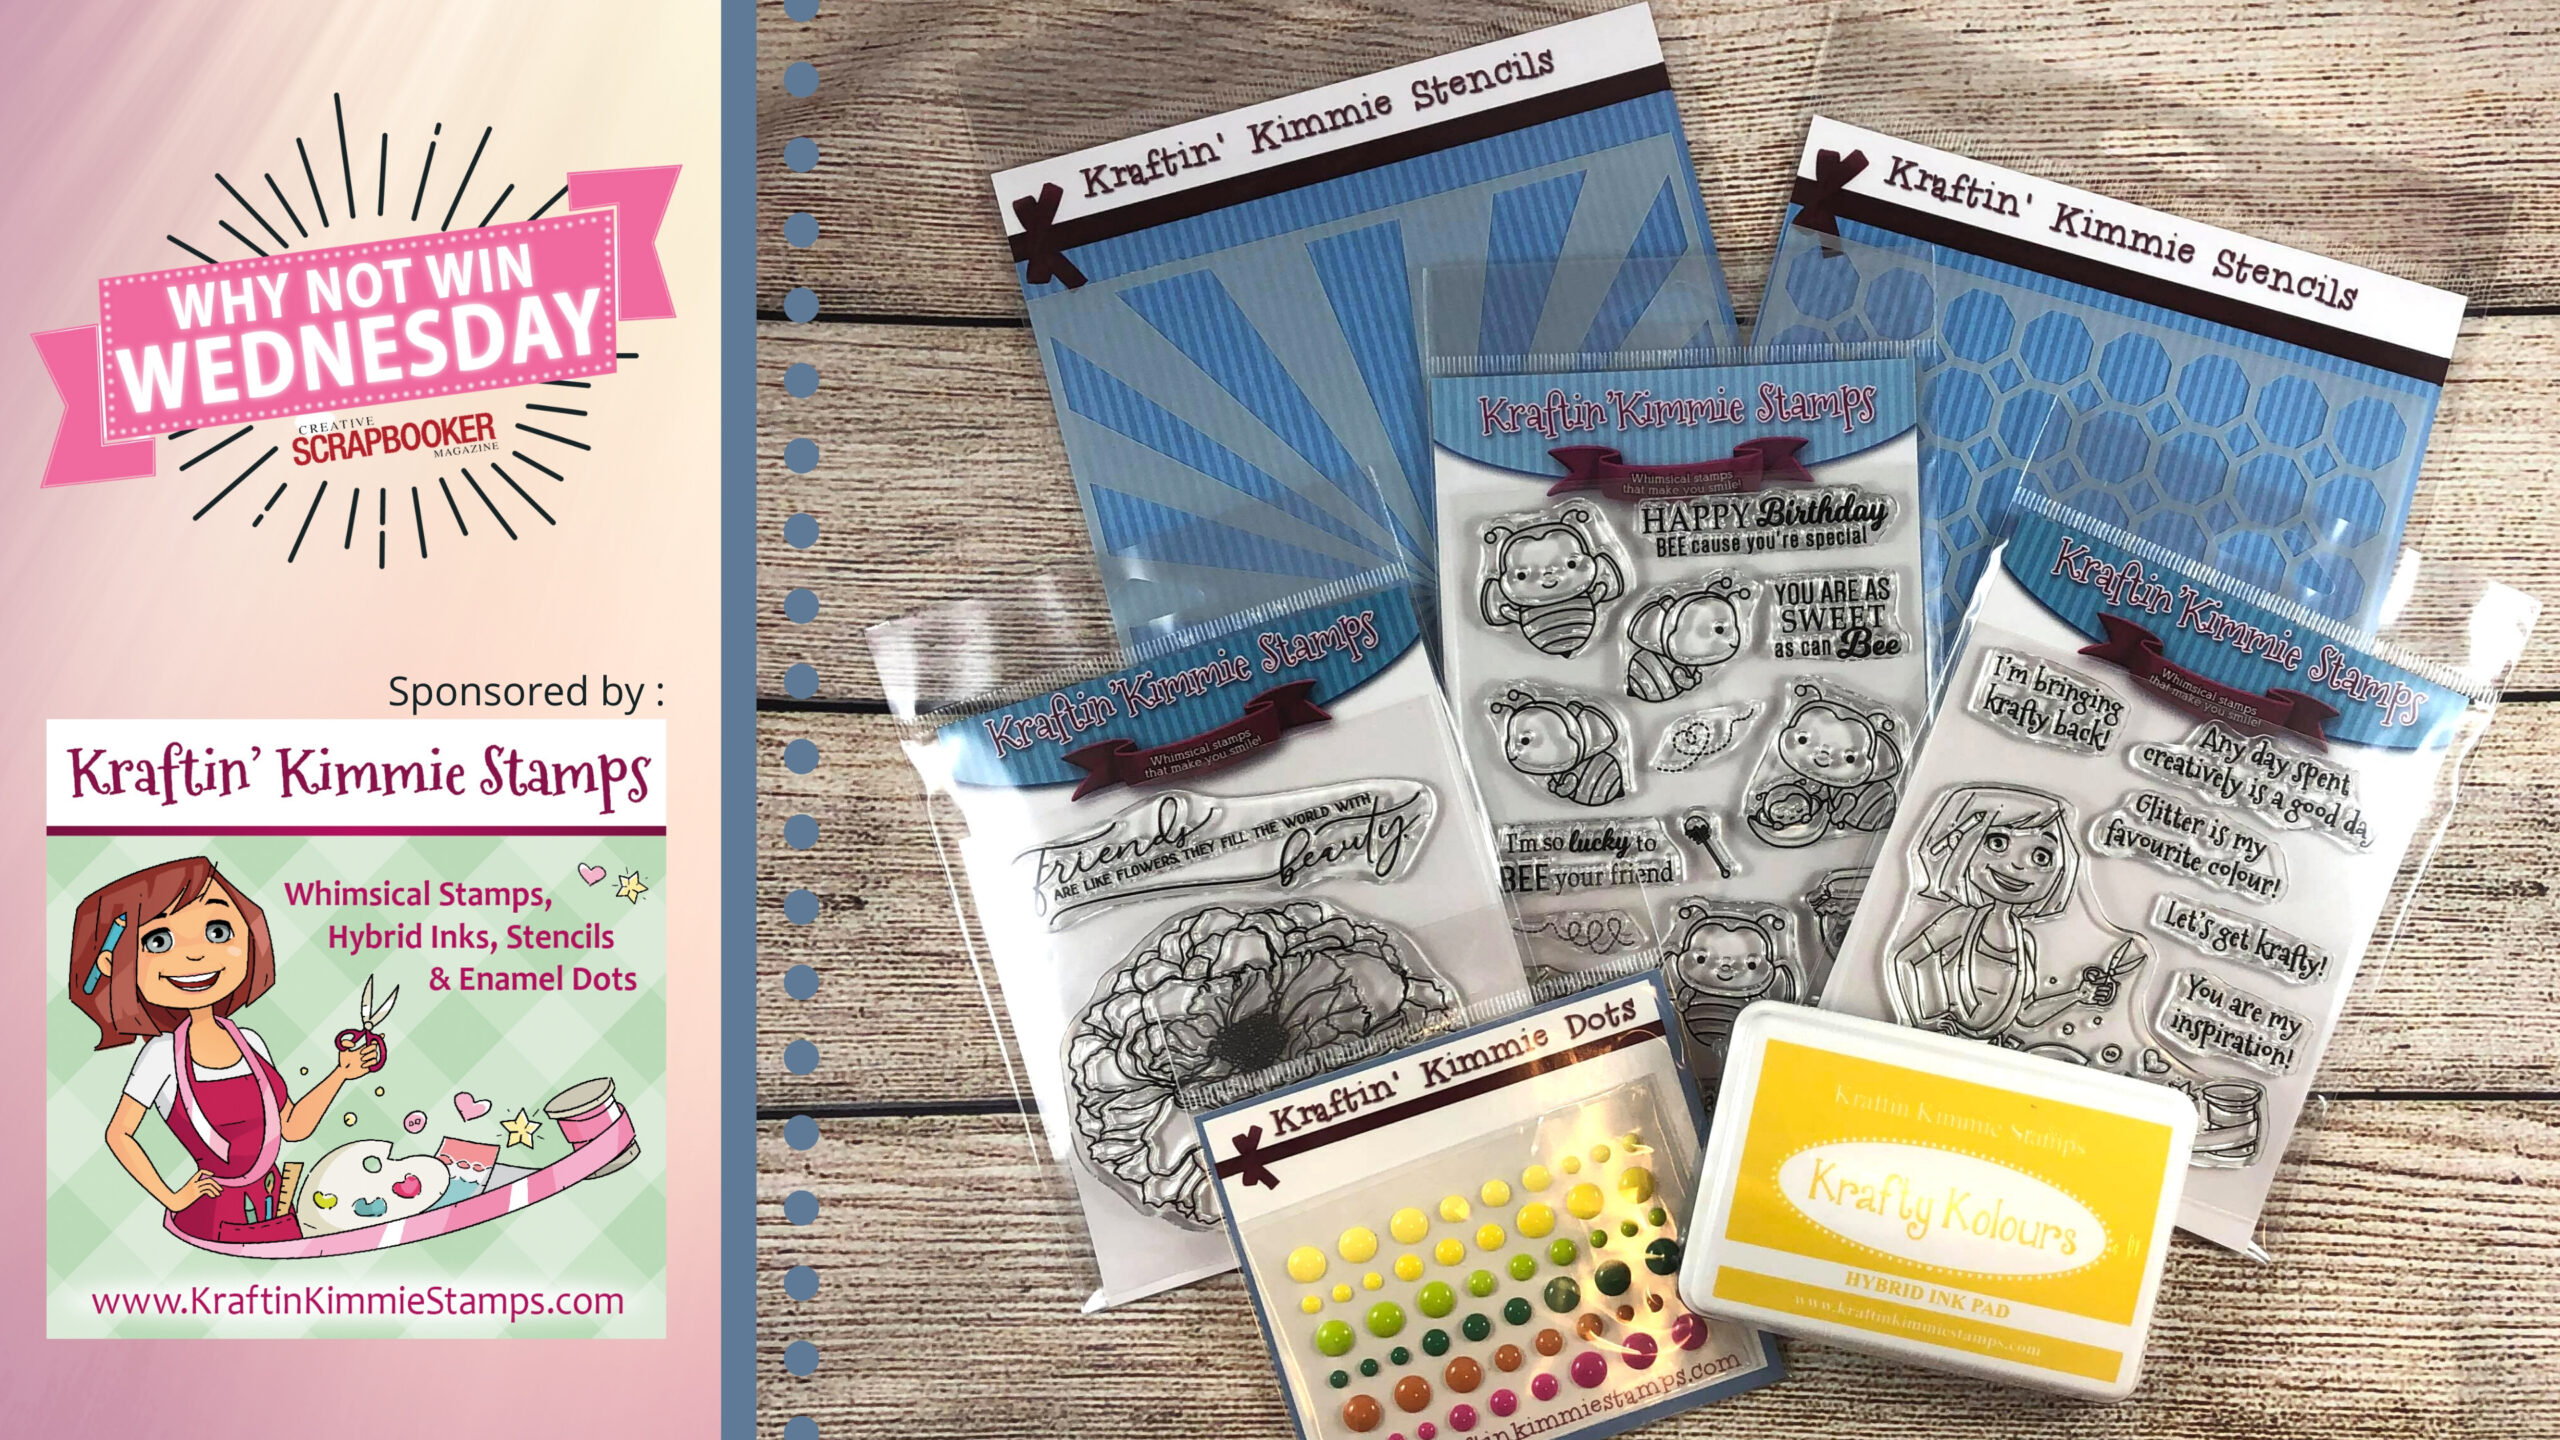 Kraftin Kimmie Stamps Prize Package